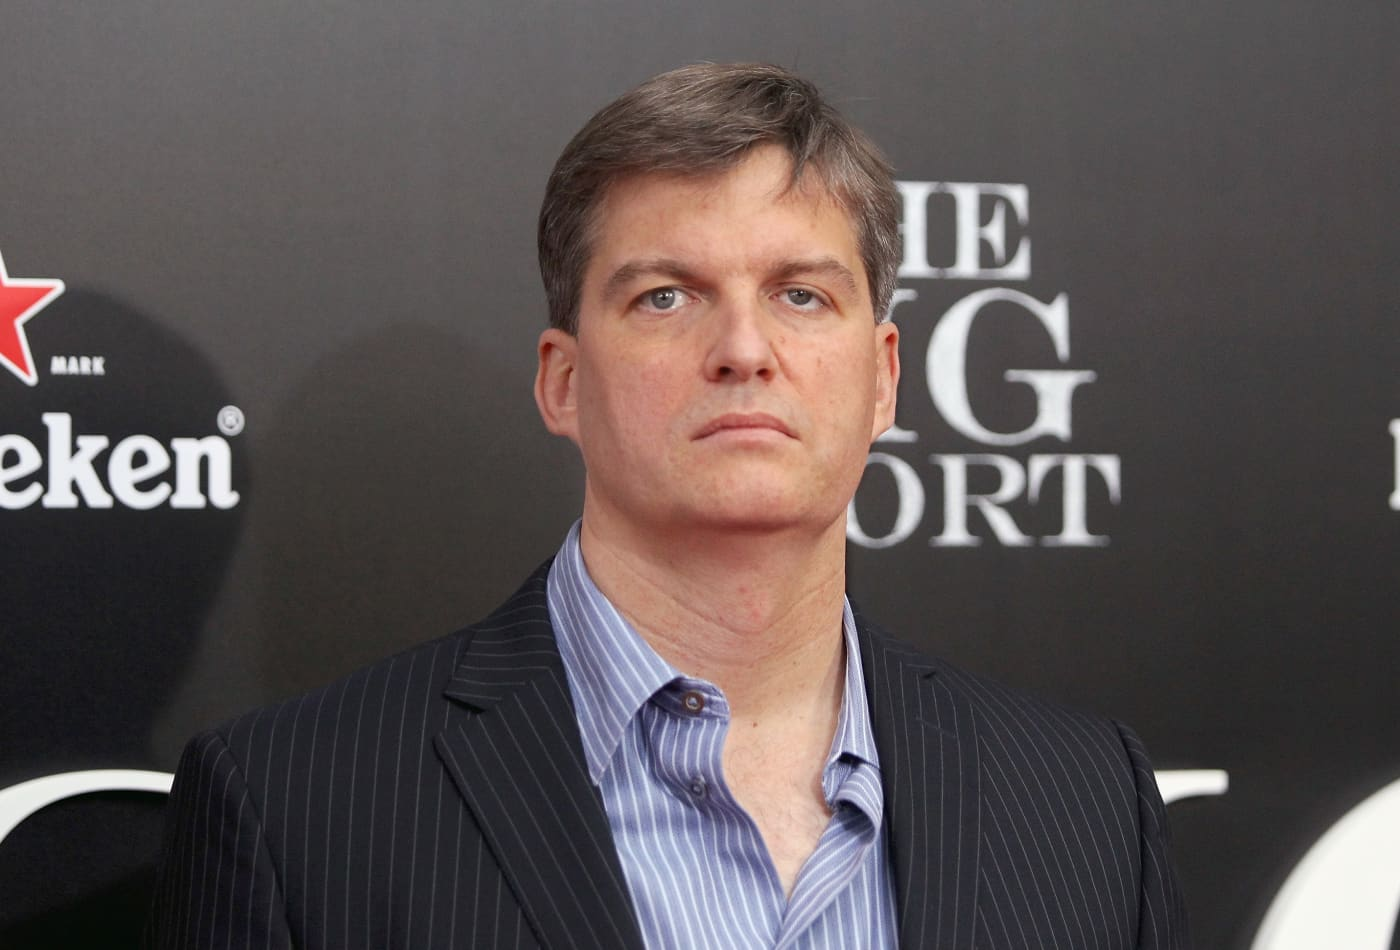 Michael Burry of 'The Big Short' reveals a $530 million bet against Tesla